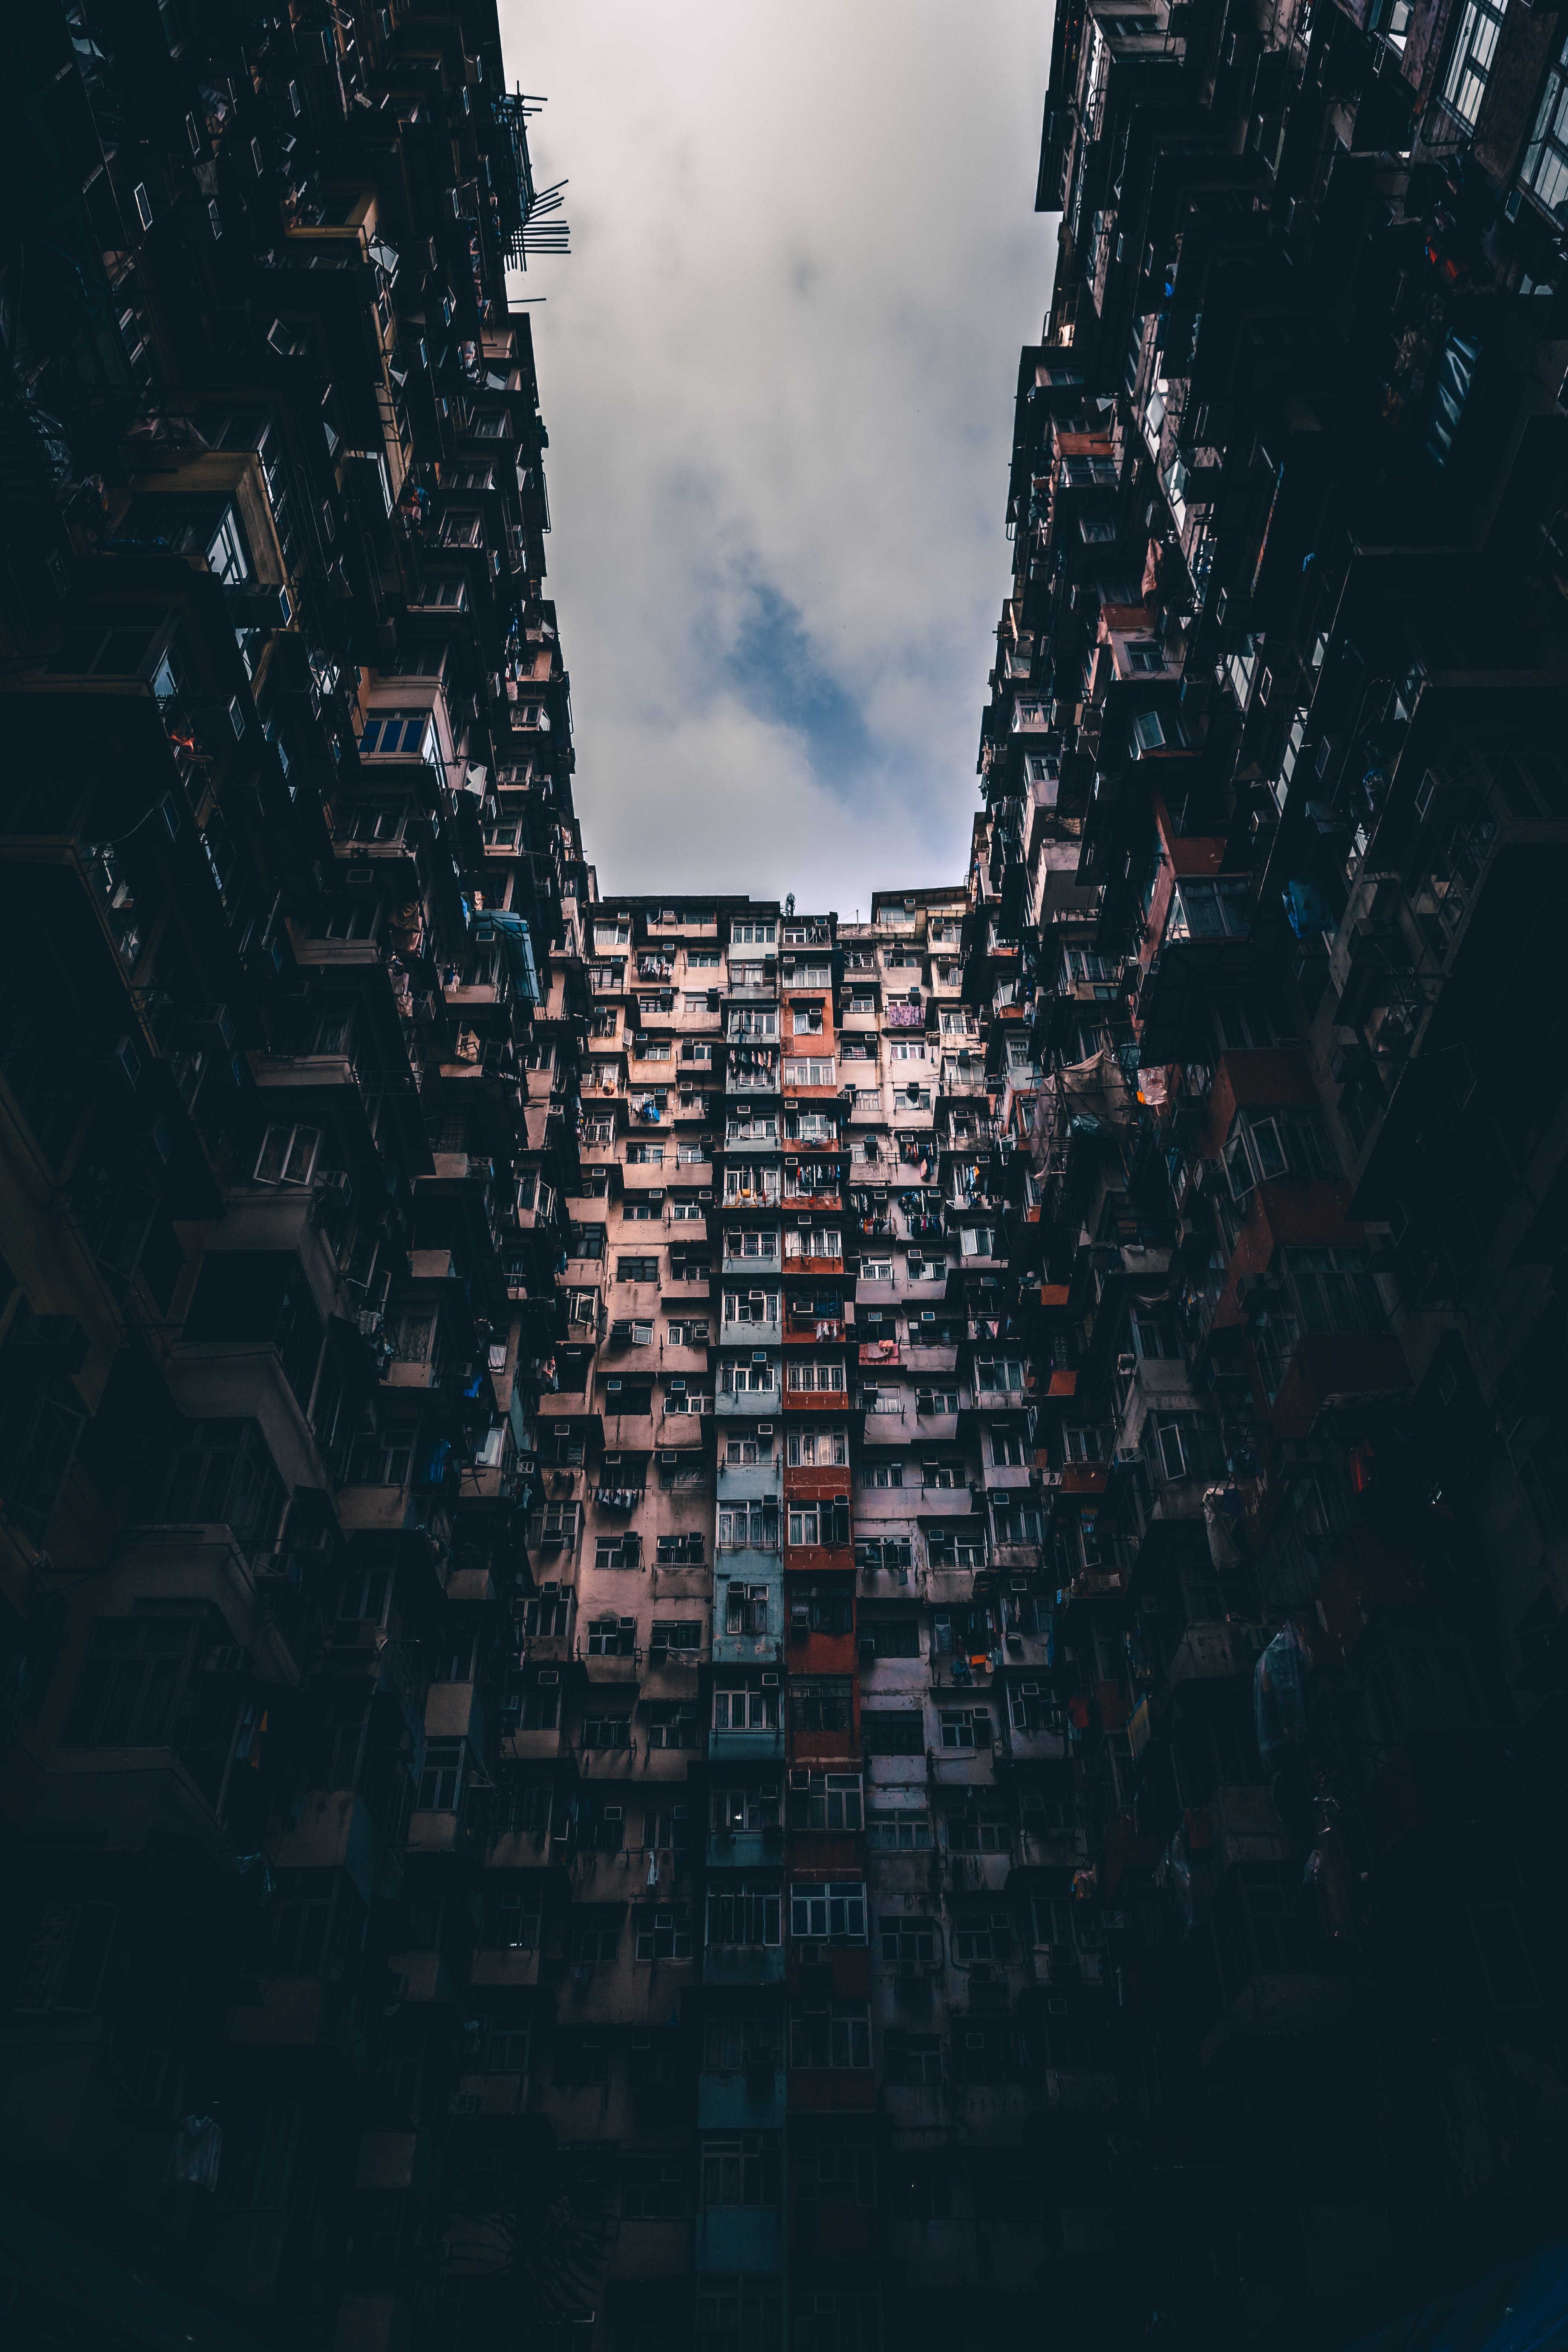 Low Angle Photo of Apartment Buildings